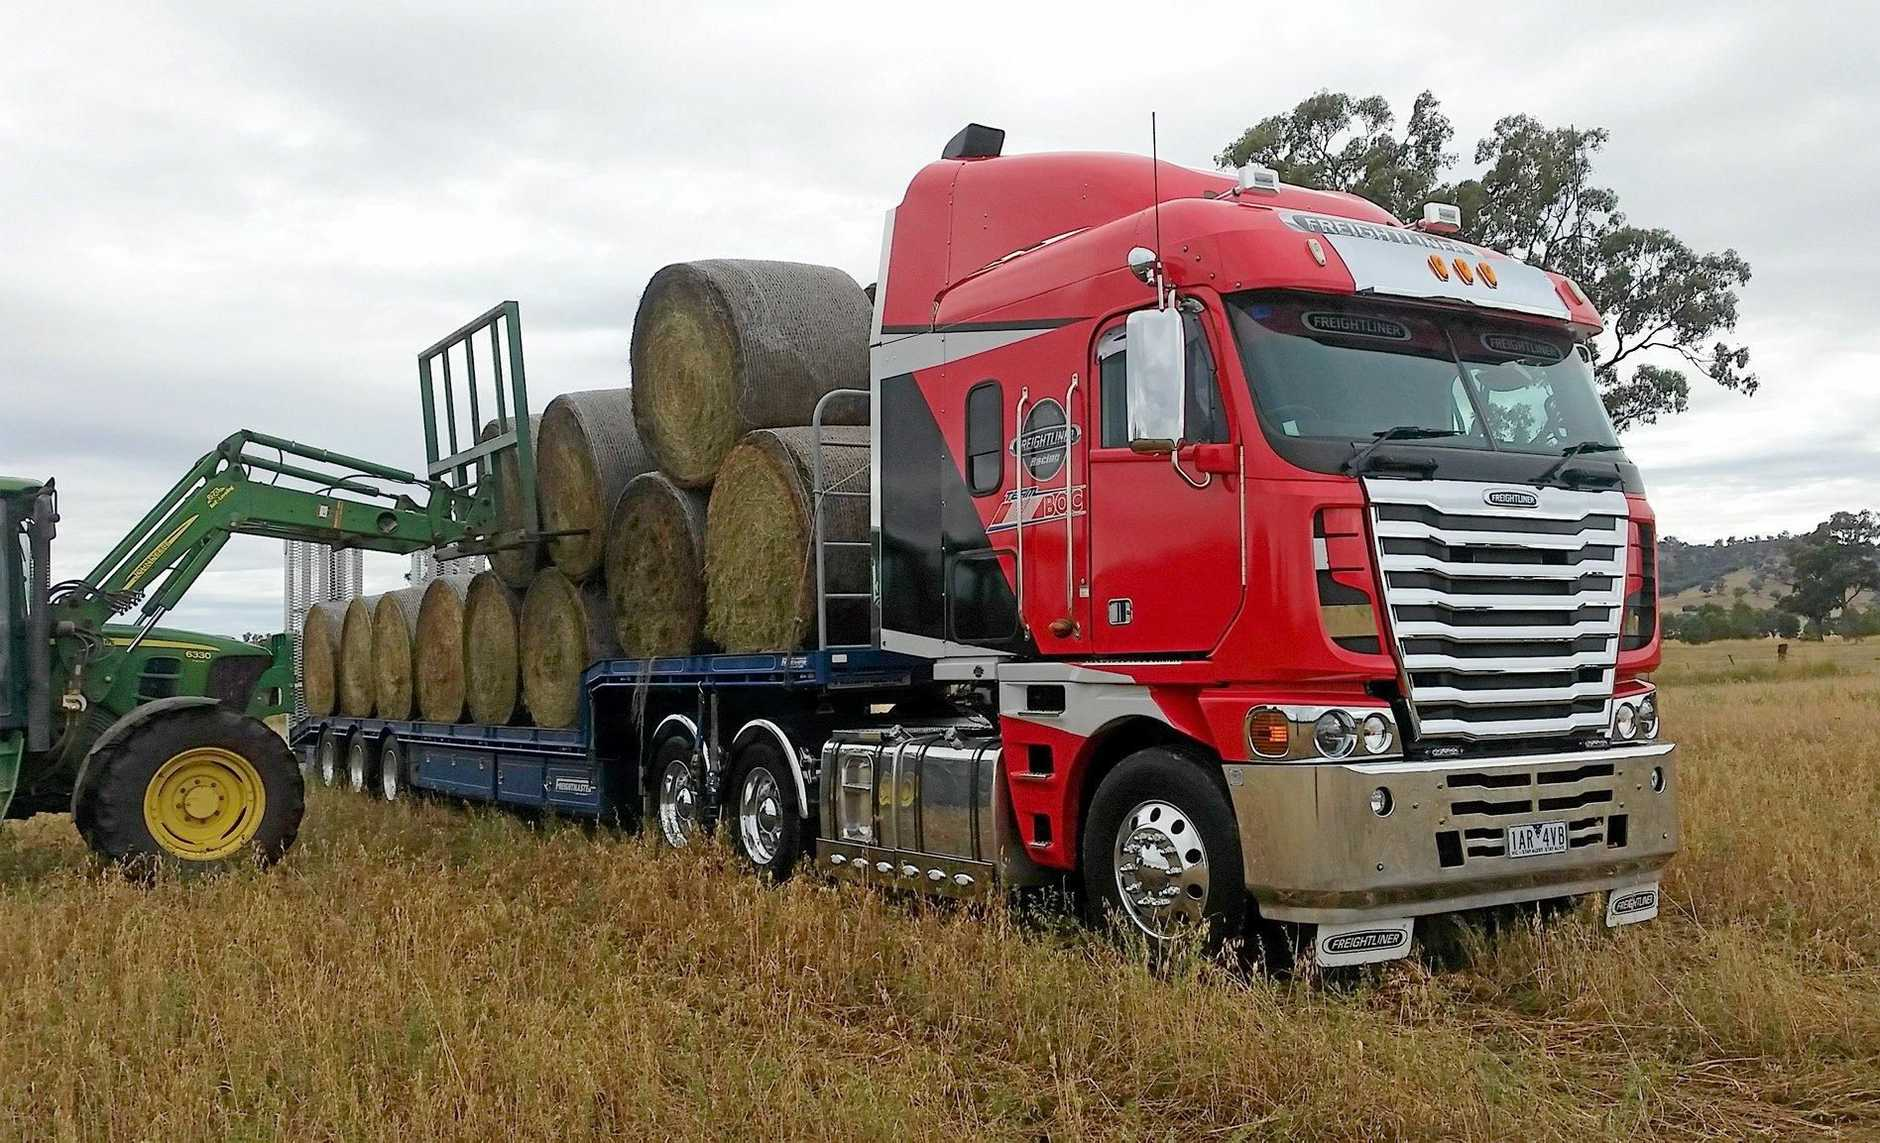 Freightliner Racing driver Paul Stax Eddy, is using the team truck to deliver donated hay to farmers in drought-hit Queensland as part of the Burrumbuttock Hay Runners Convoy that gets going tomorrow. Photo Contributed